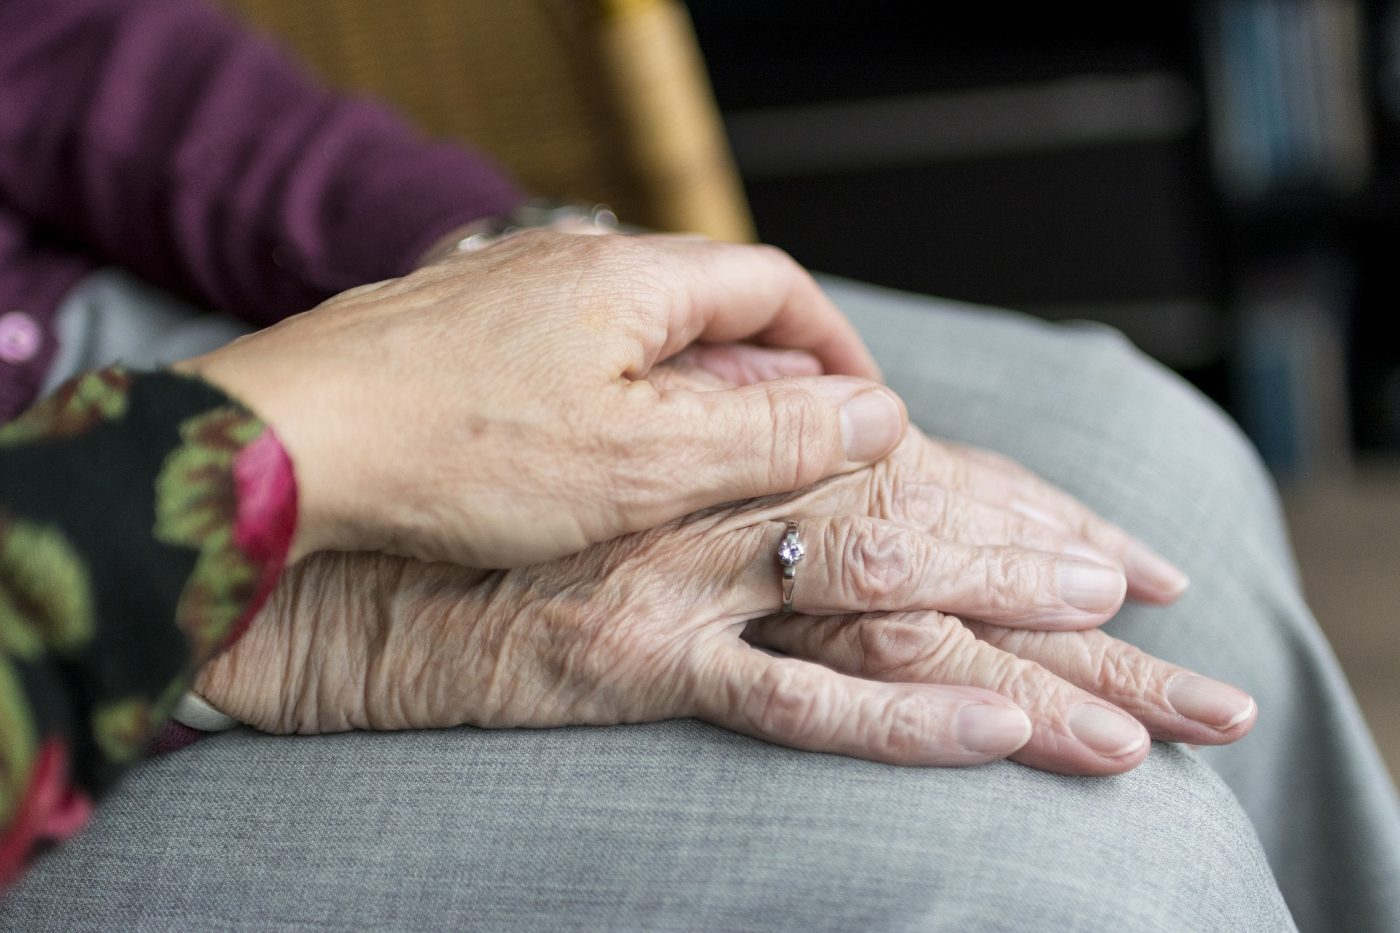 What You Should Know About Long-Term Care (LTC) Insurance